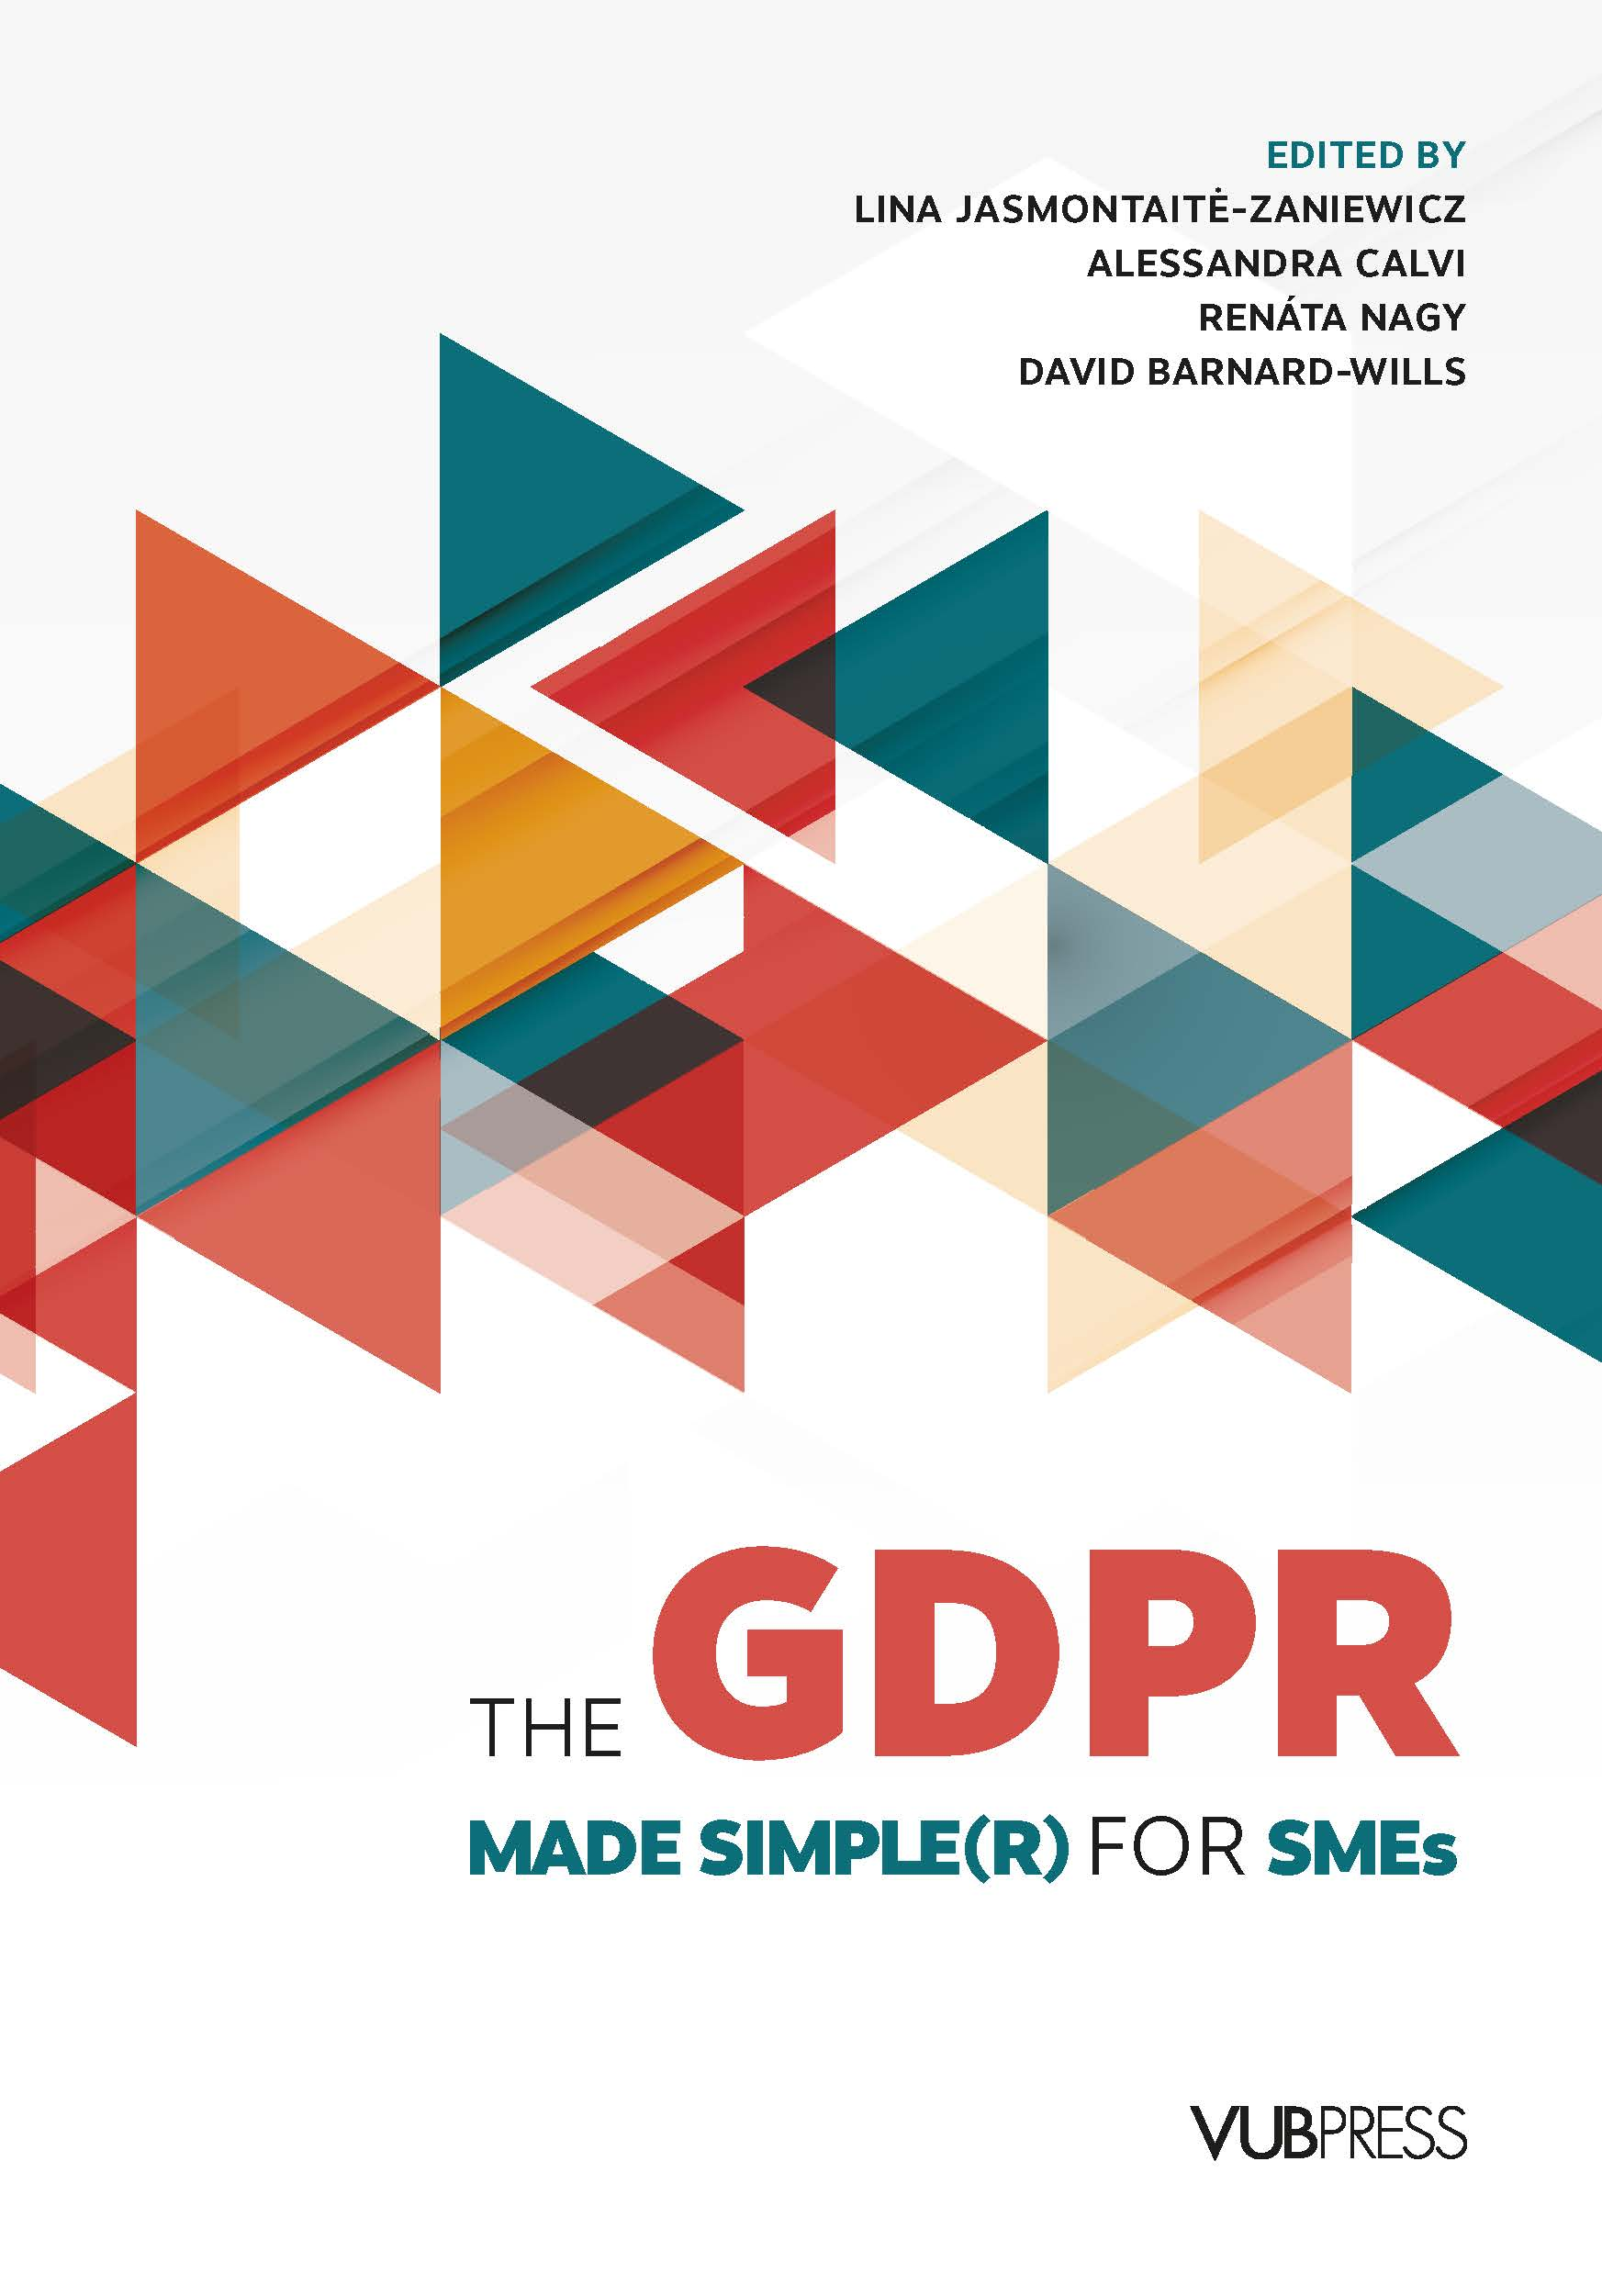 THE GDPR MADE SIMPLE(R) FOR SMES